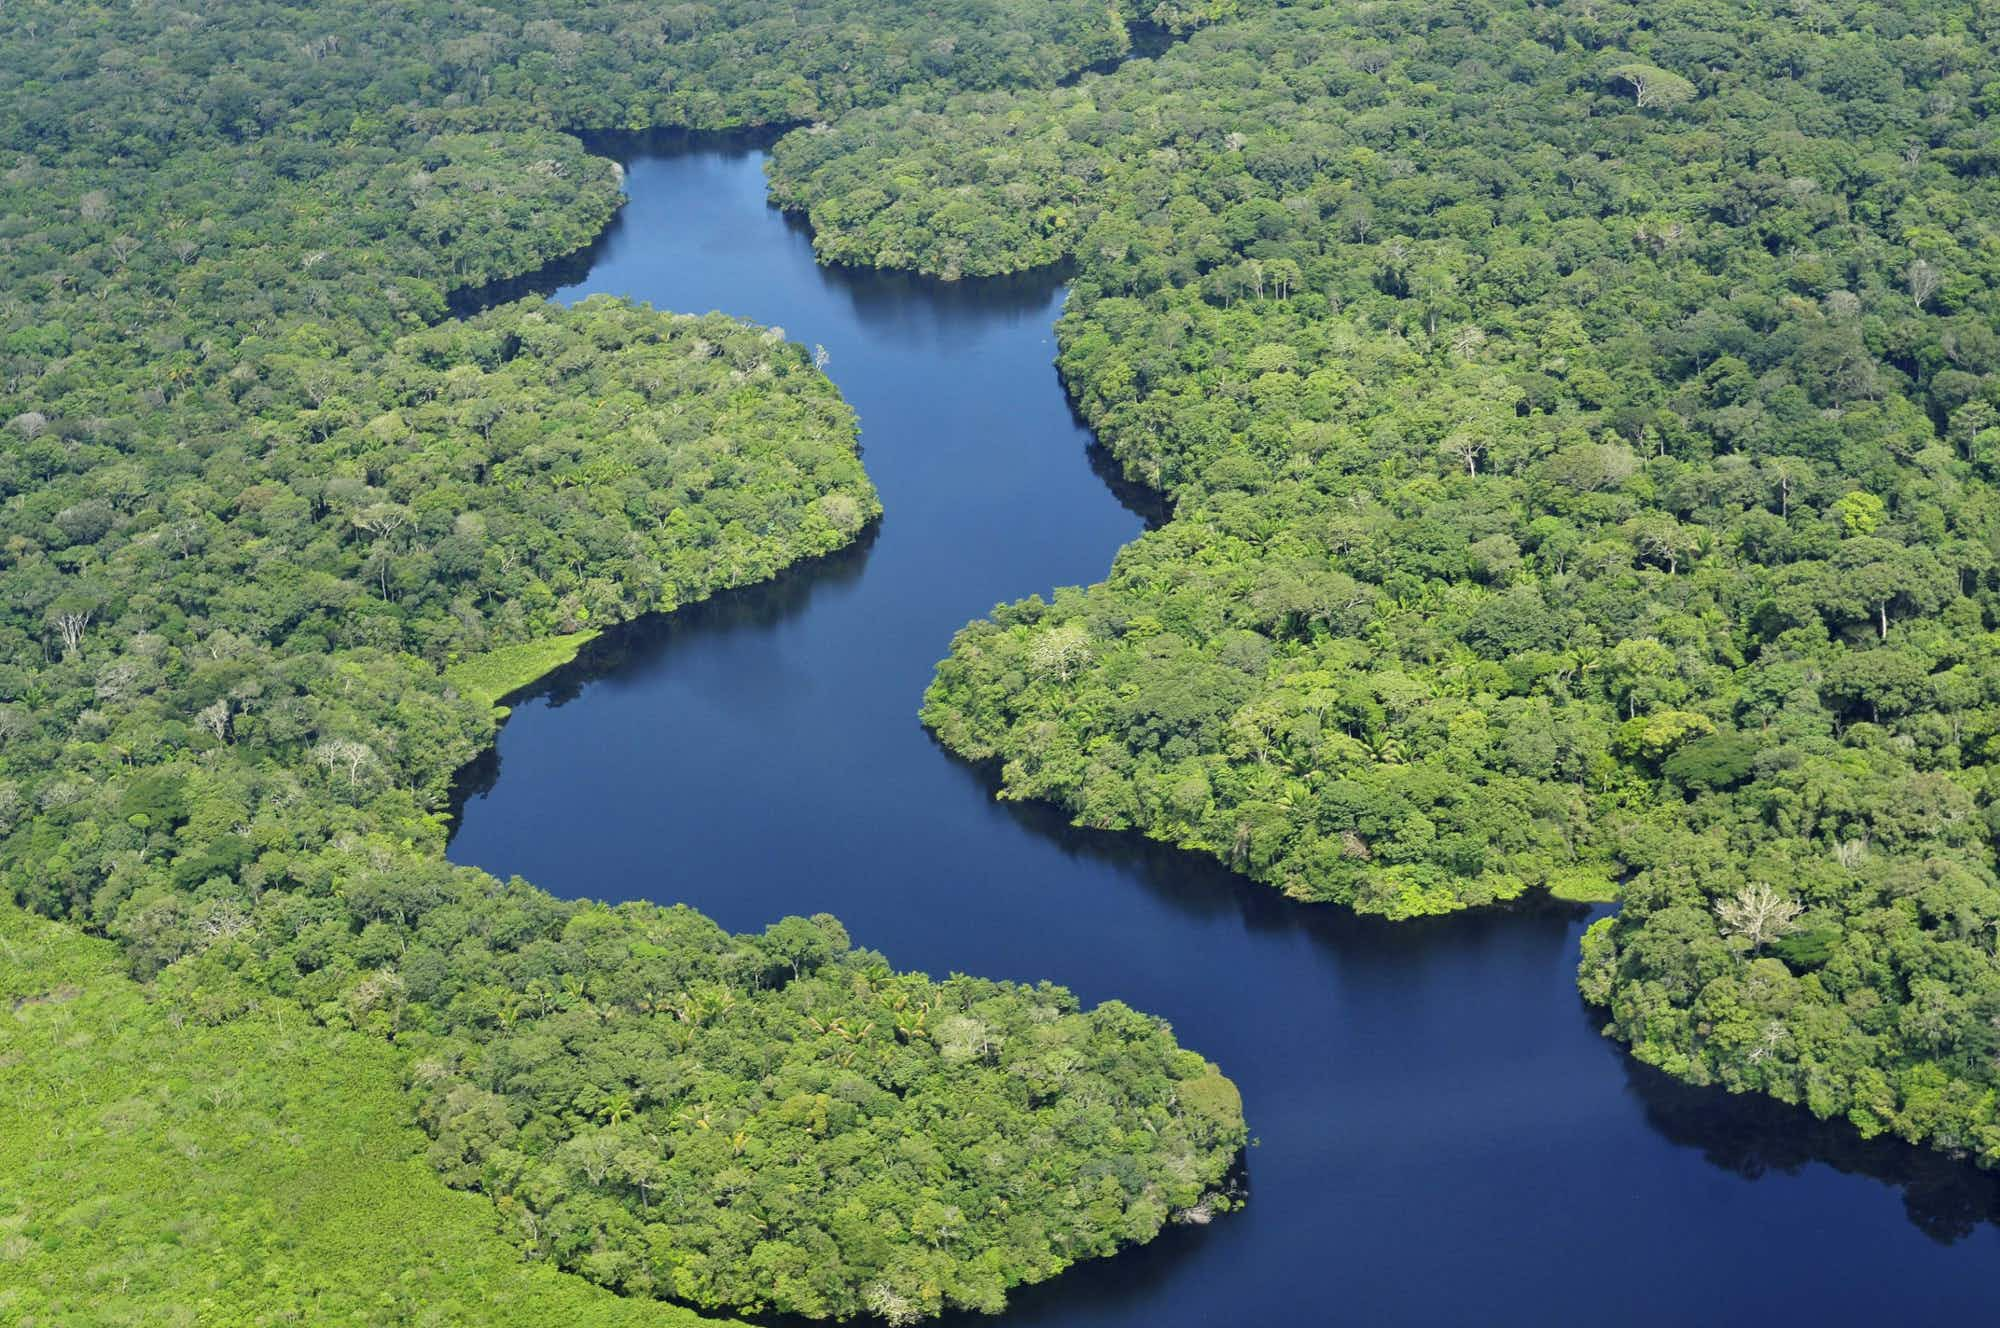 Brazil is set for largest Amazon restoration project ever